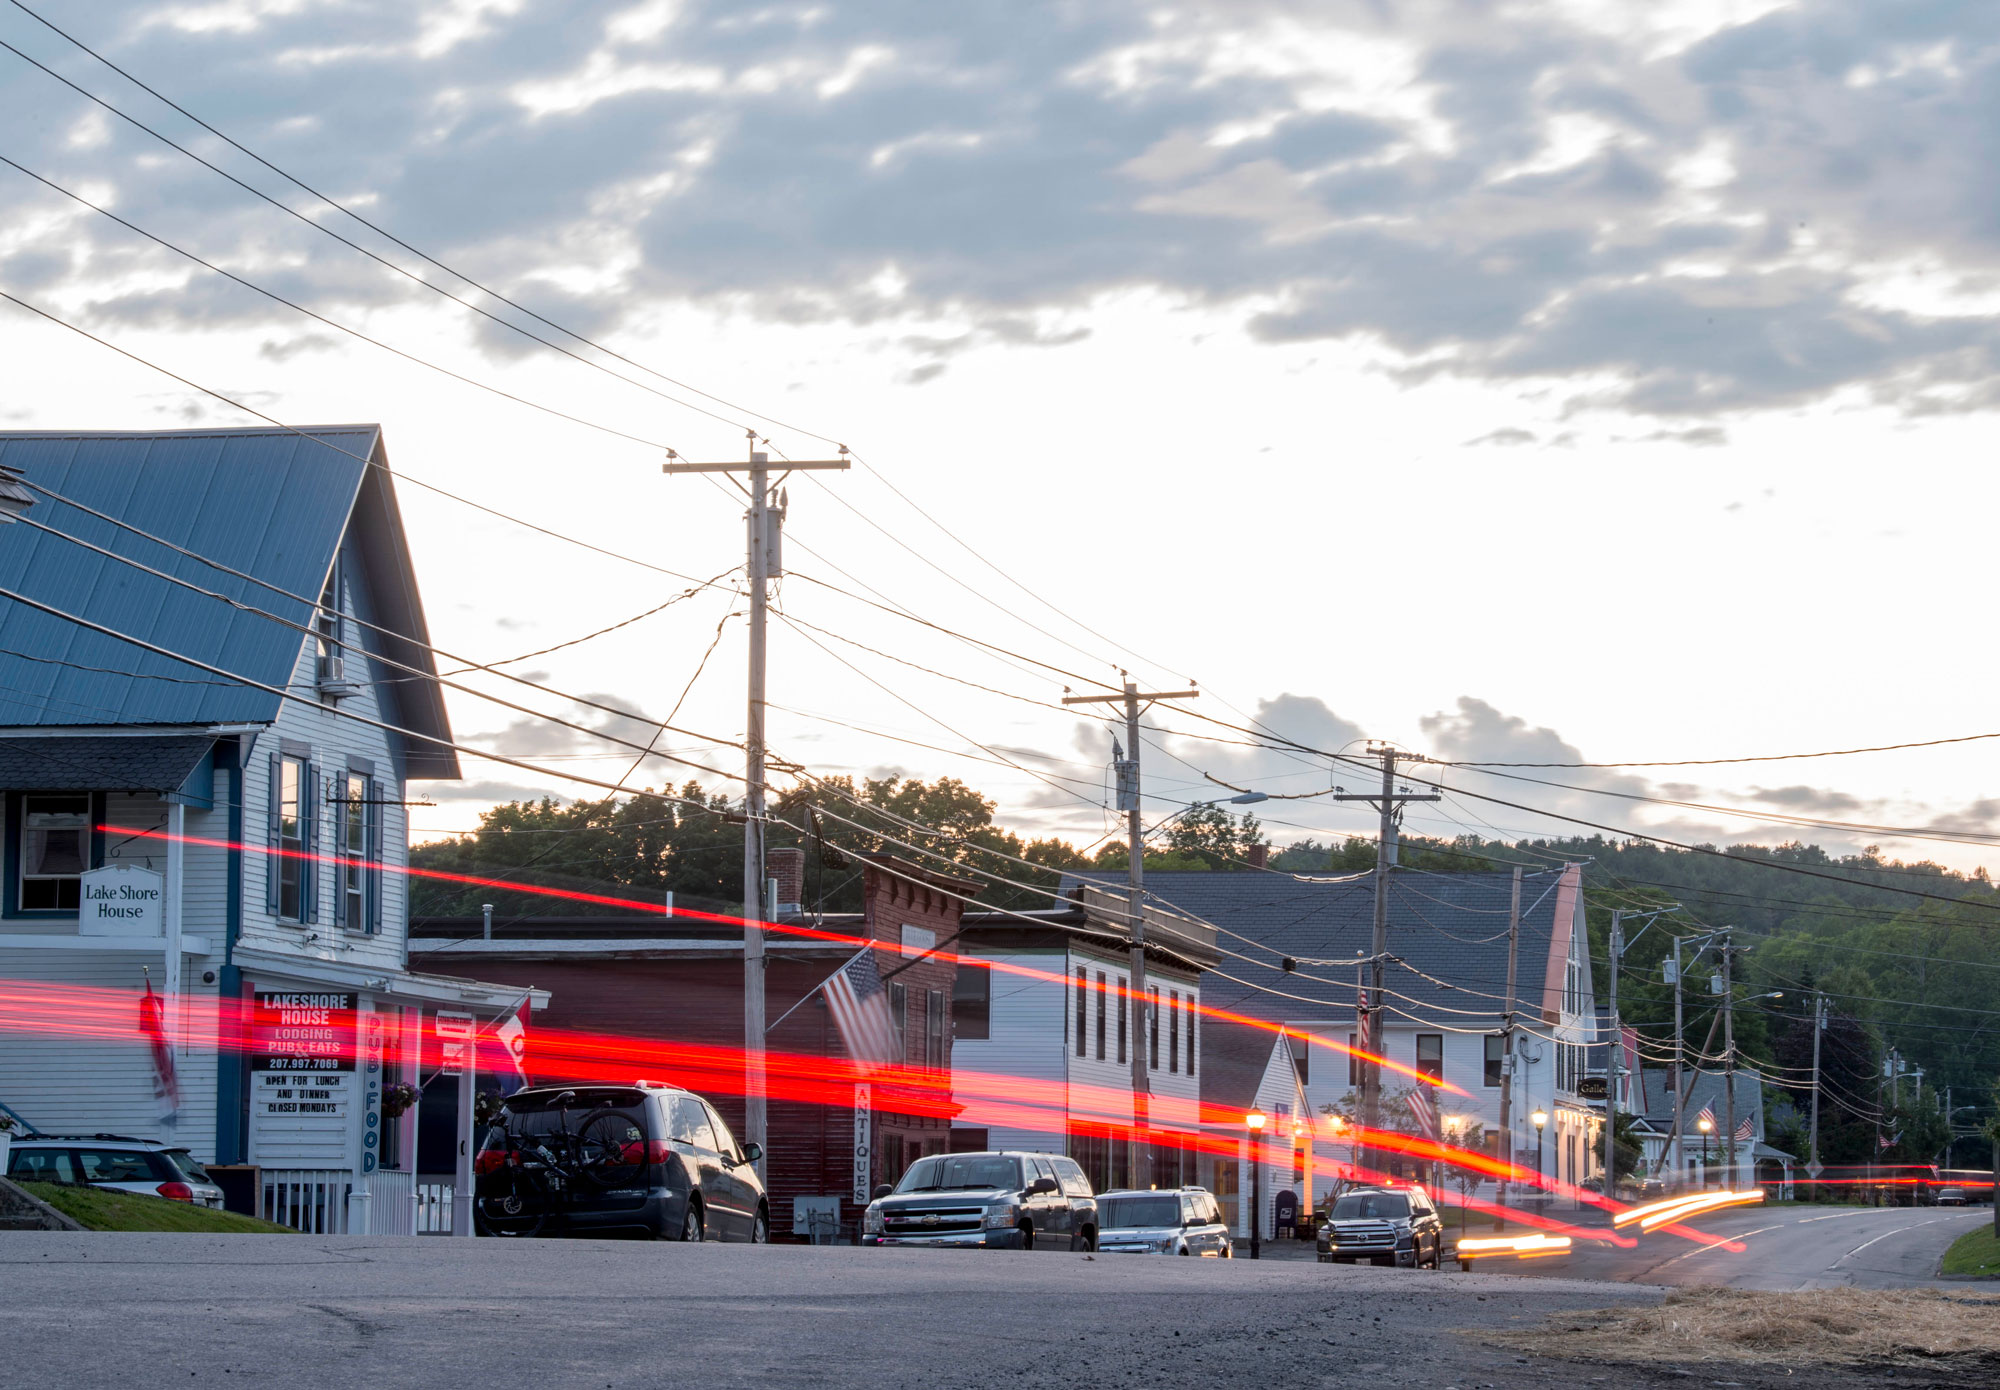 Traffic flows down Main Street in Monson, Maine